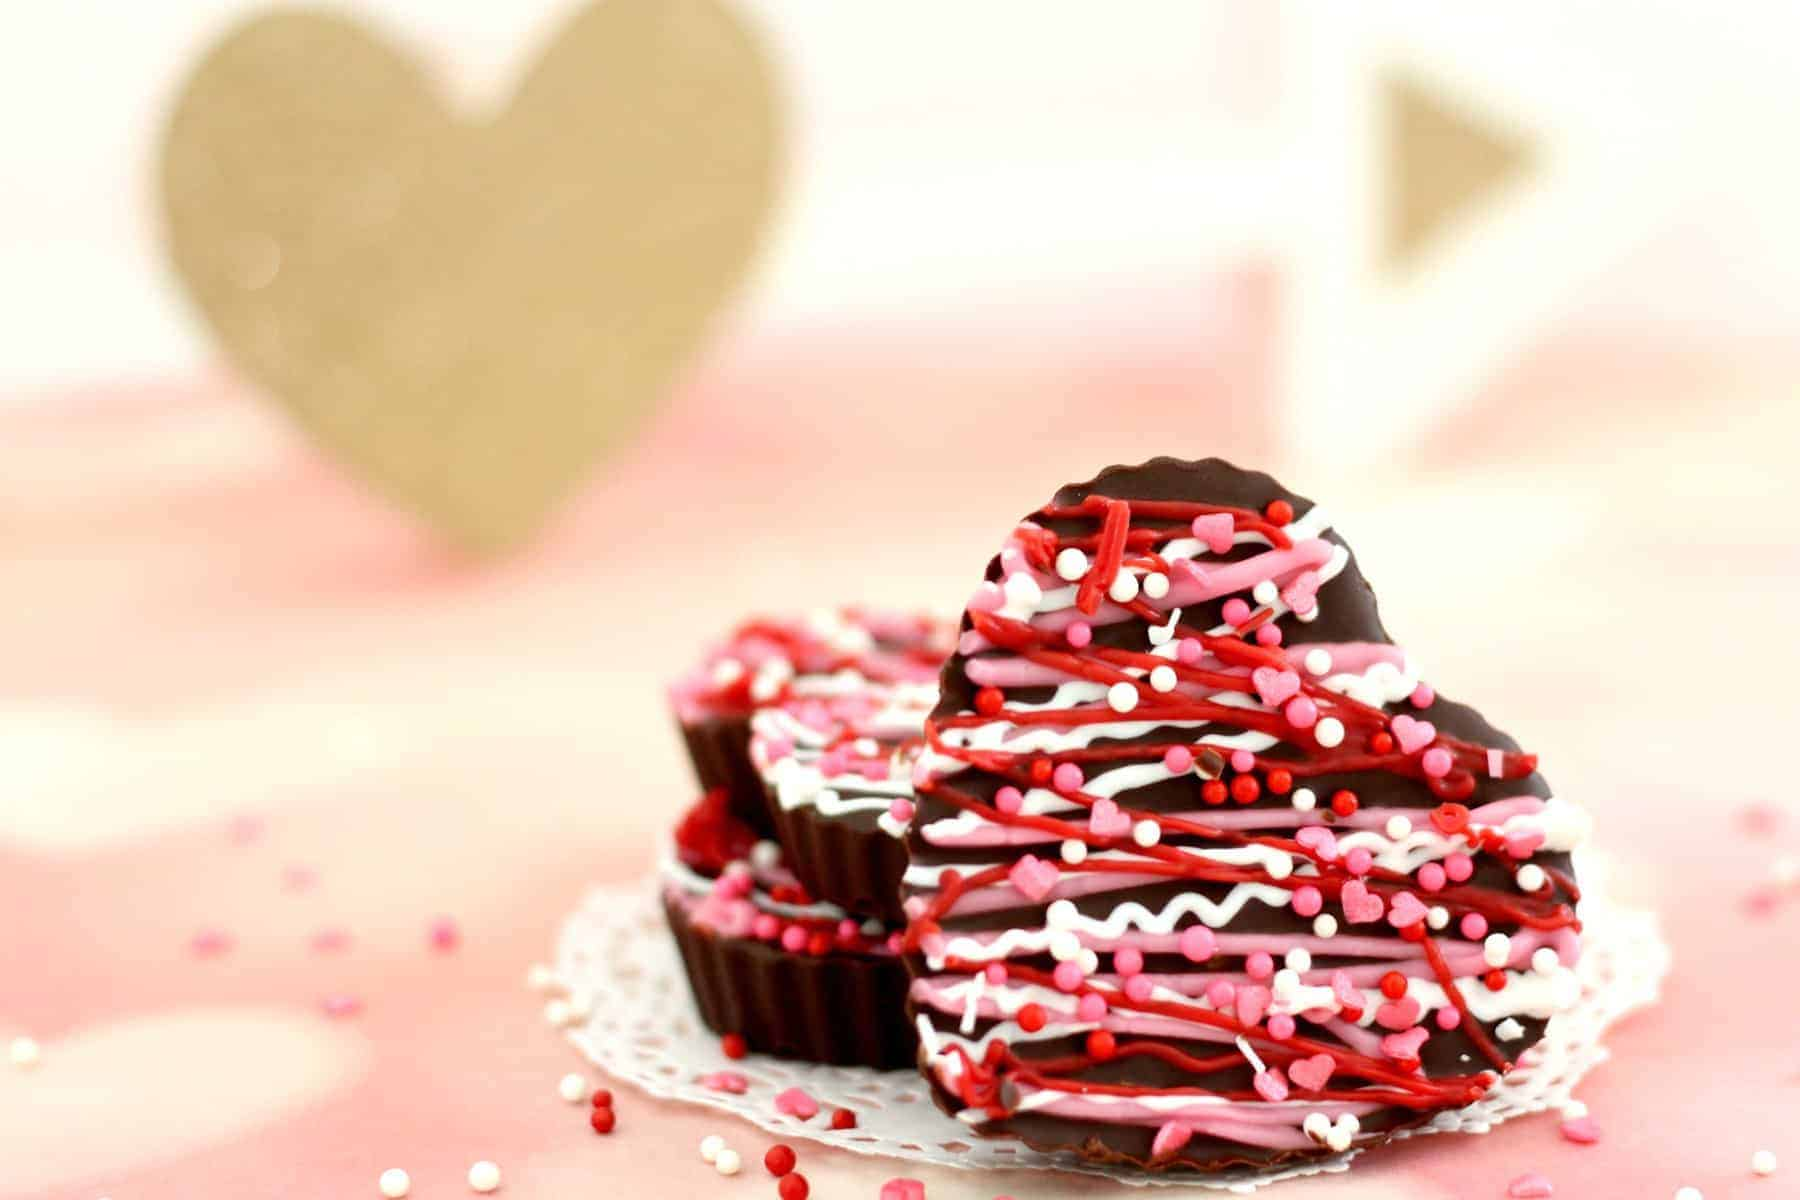 homemade dark chocolate hearts decorated with sprinkles